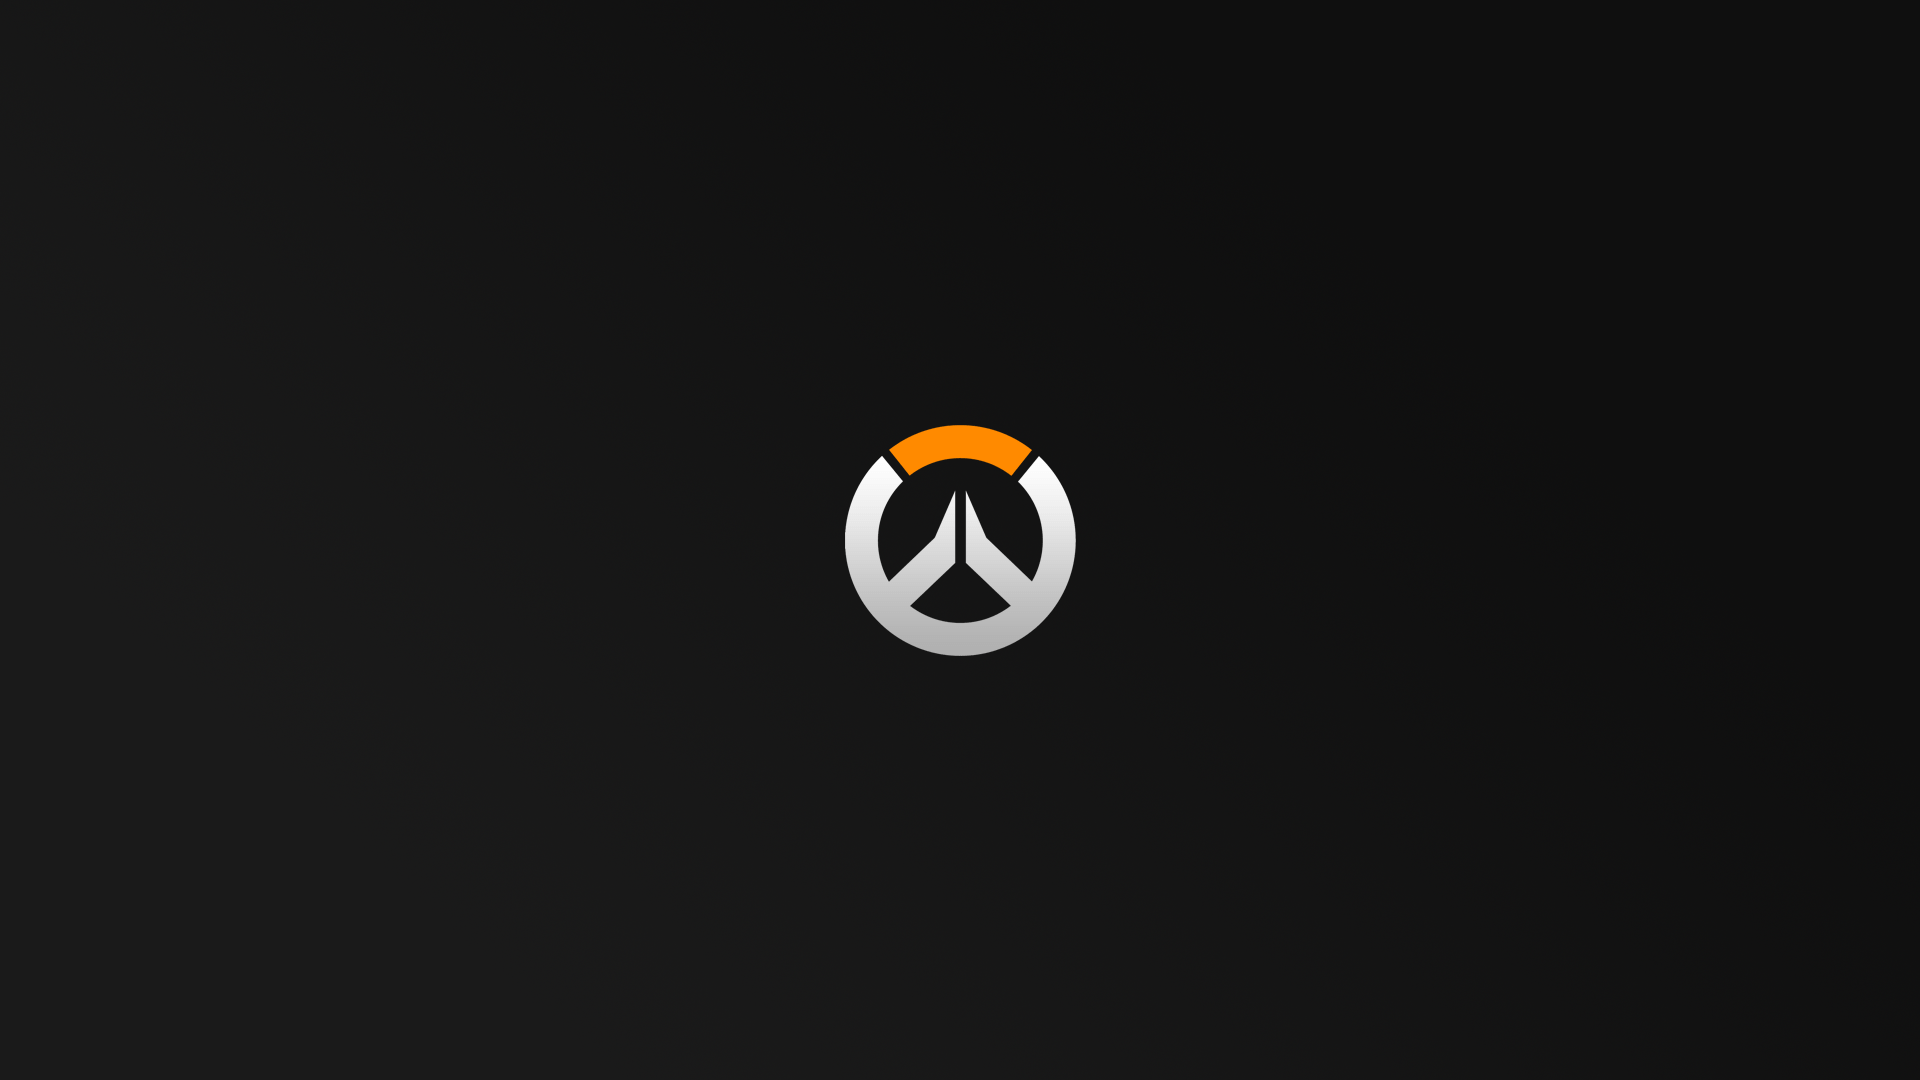 Dark Theme Wallpaper Hd Quote Overwatch Wallpapers High Quality Download Free